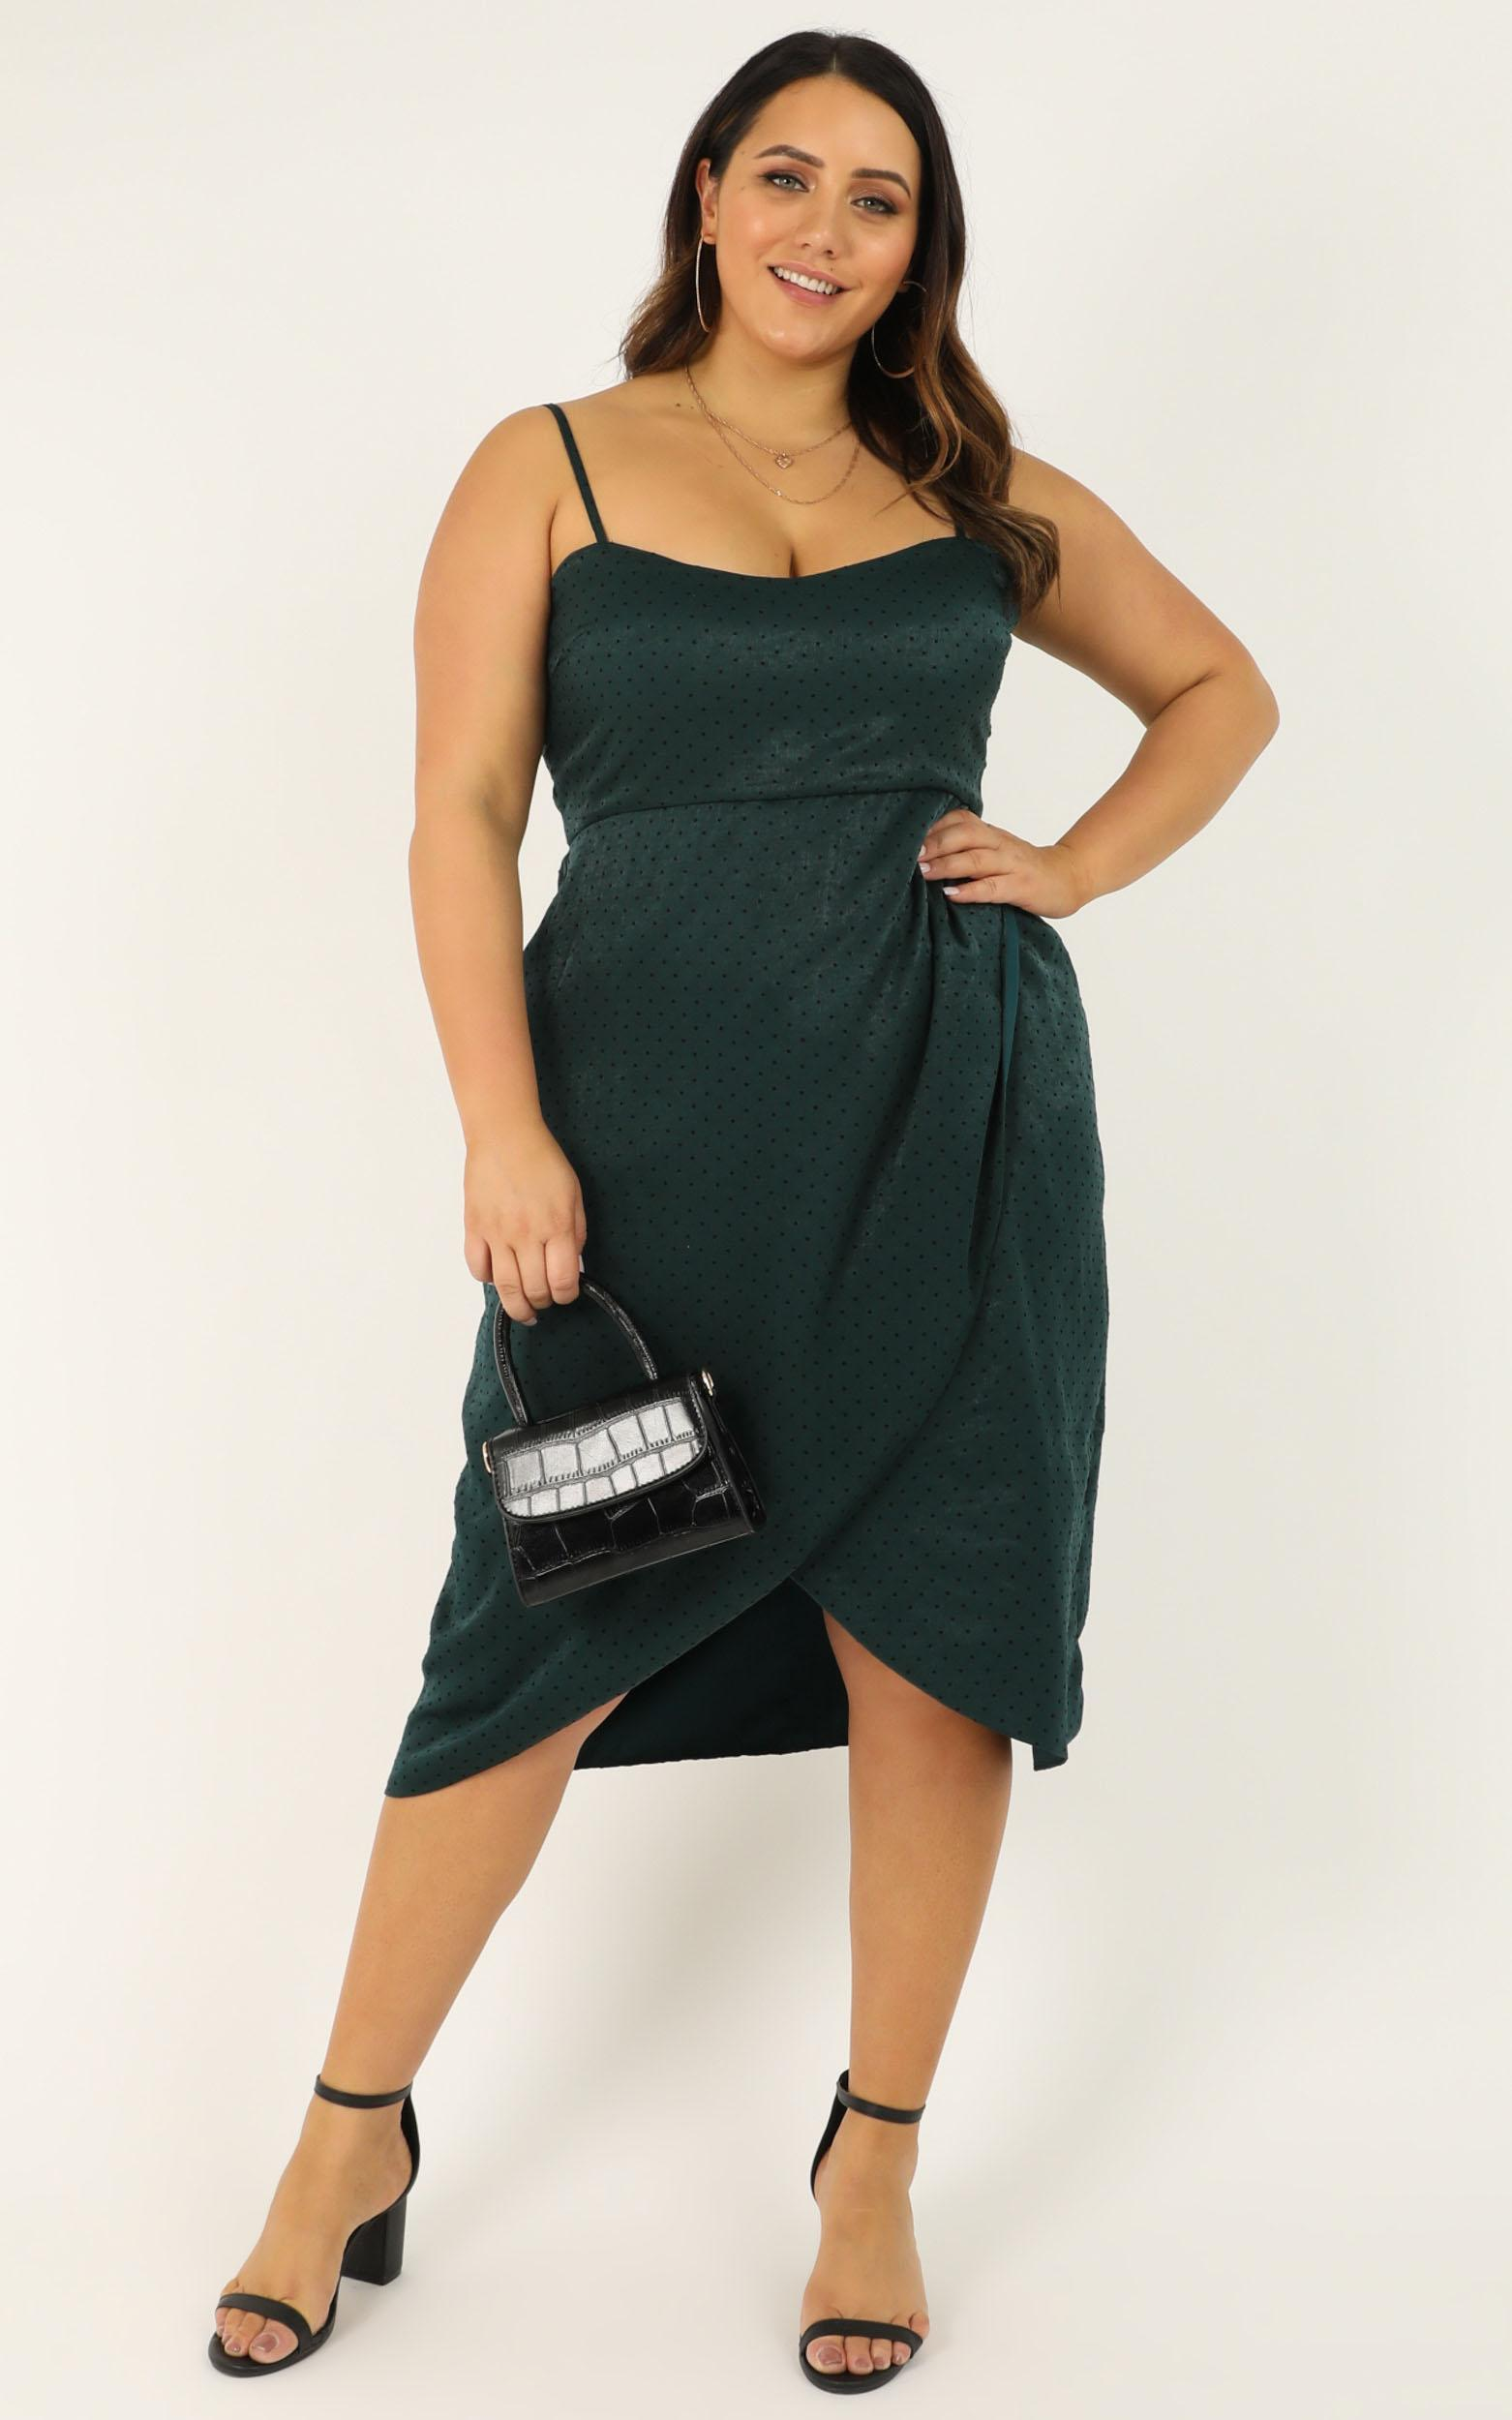 American Love dress in teal spot - 20 (XXXXL), Green, hi-res image number null